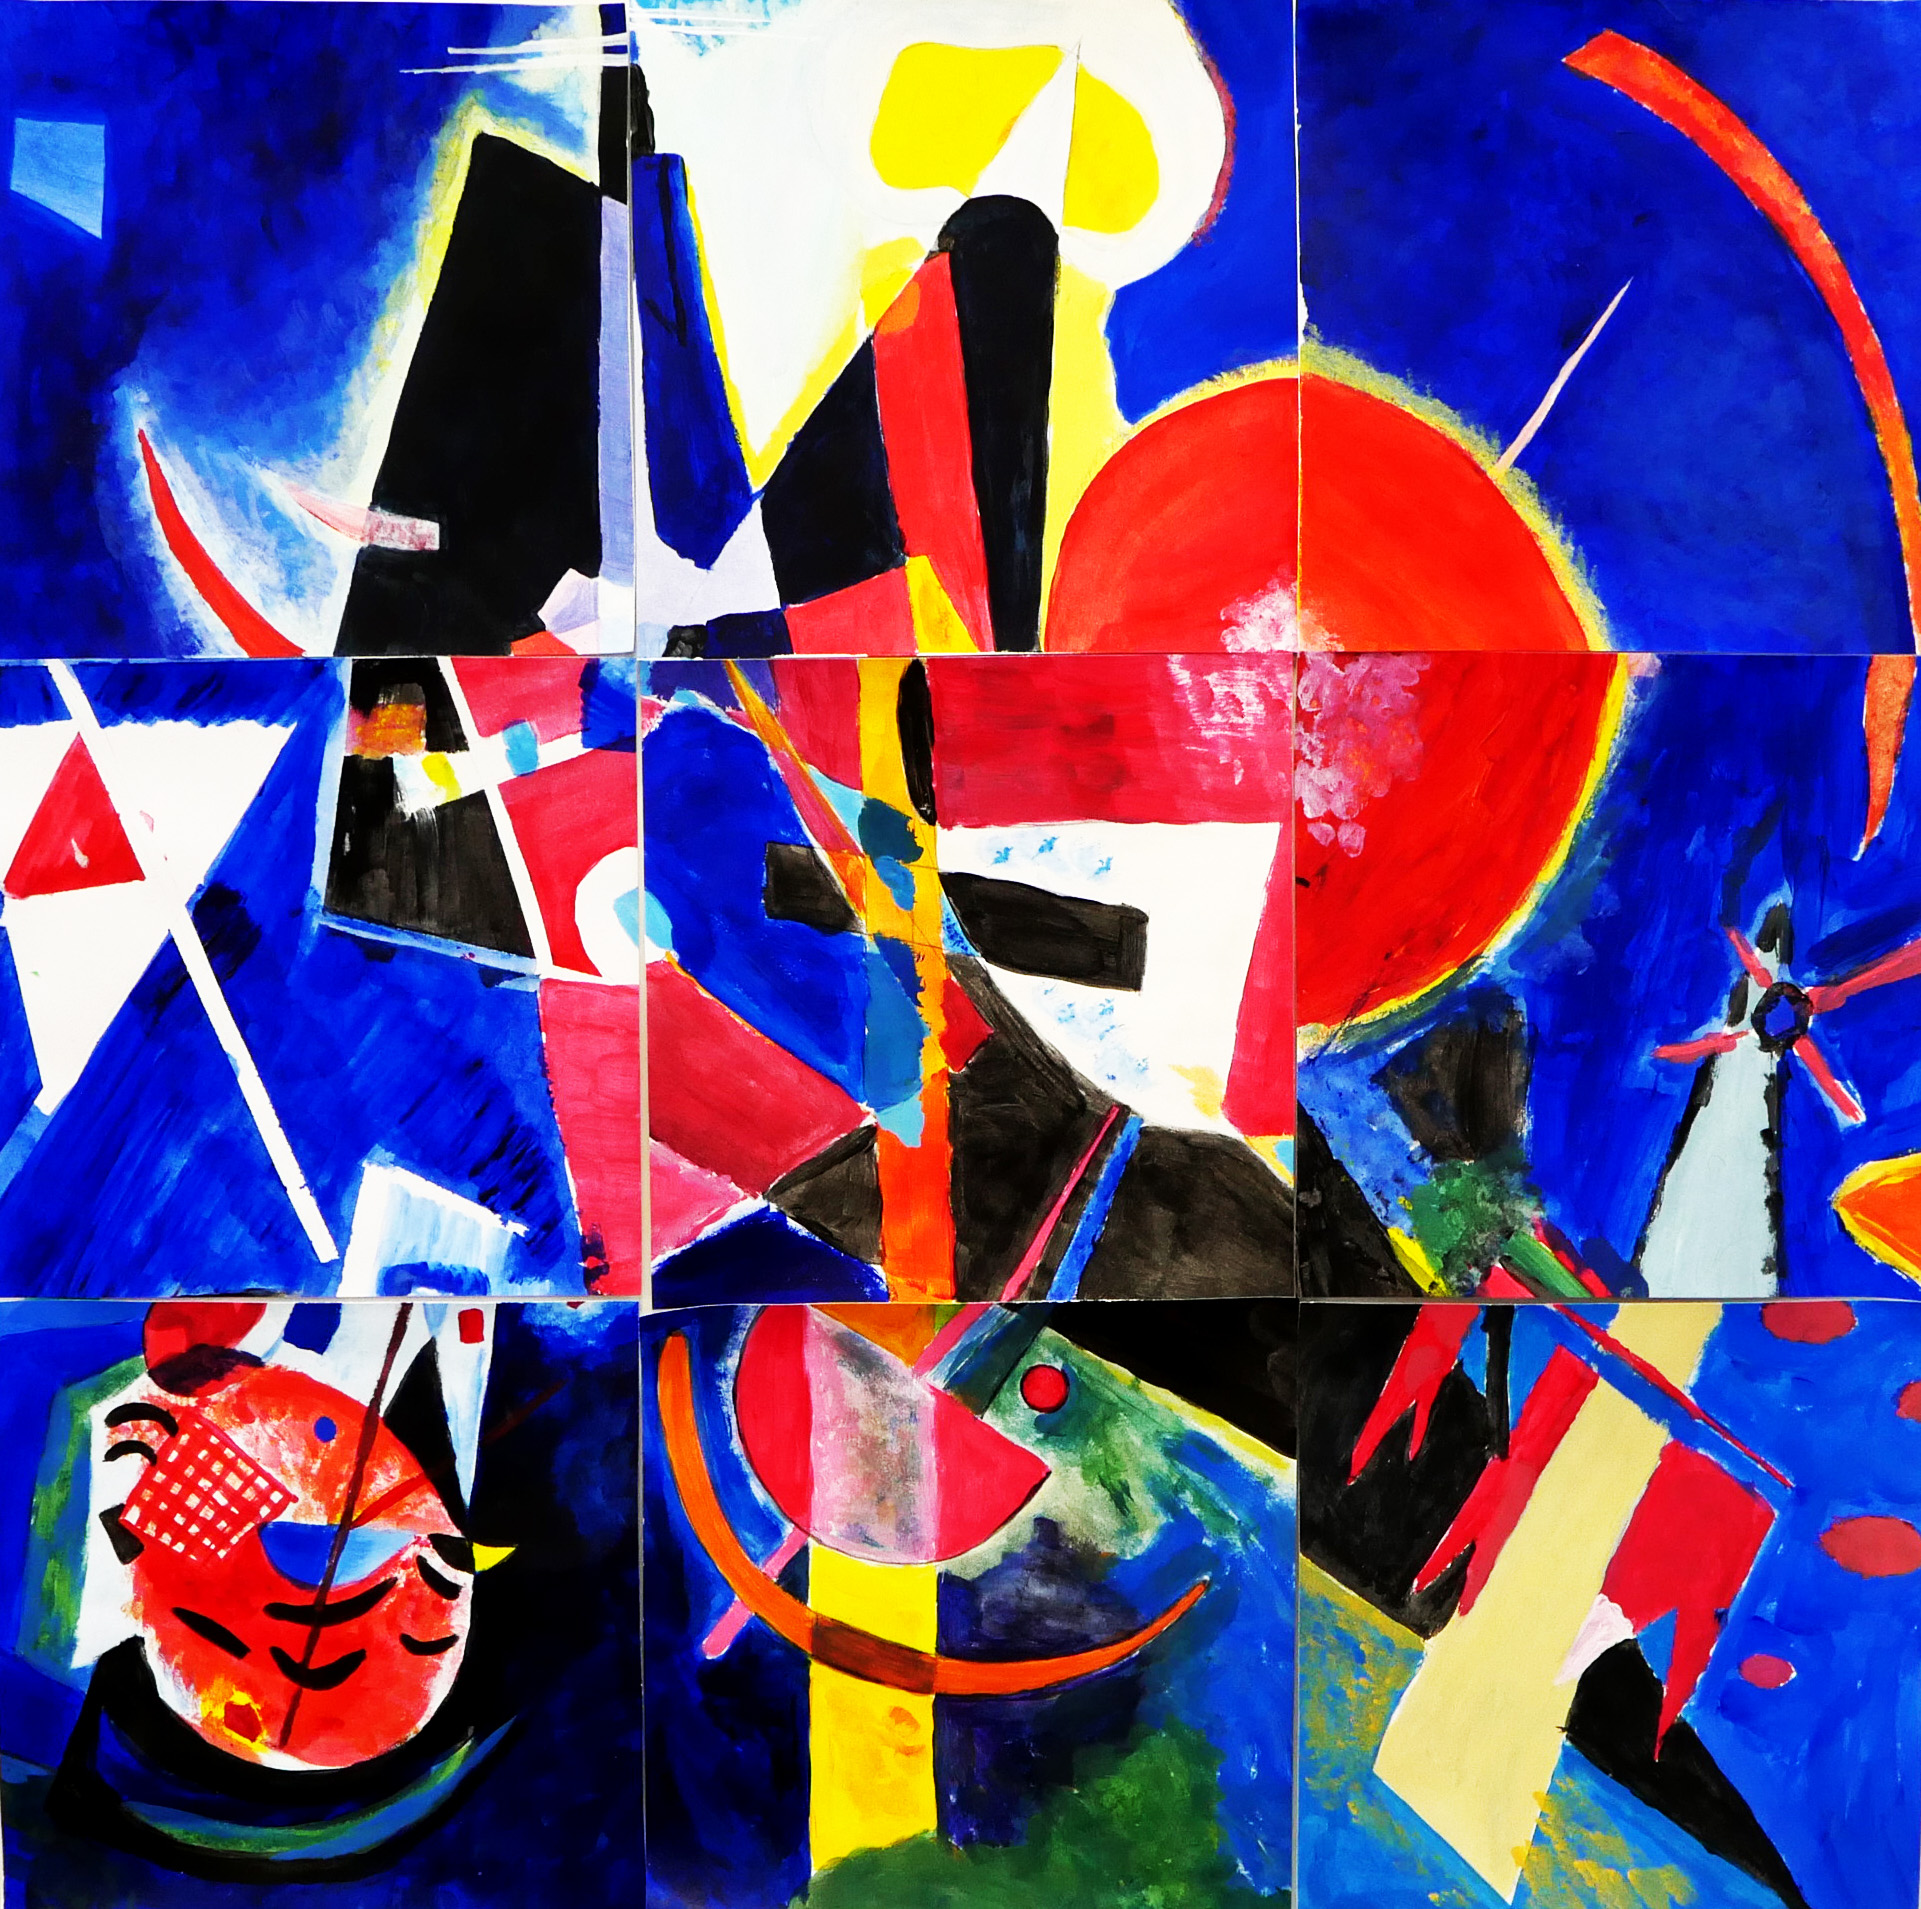 Group collaboration based on Wassily Kandinsky's  In Blue  (1925)